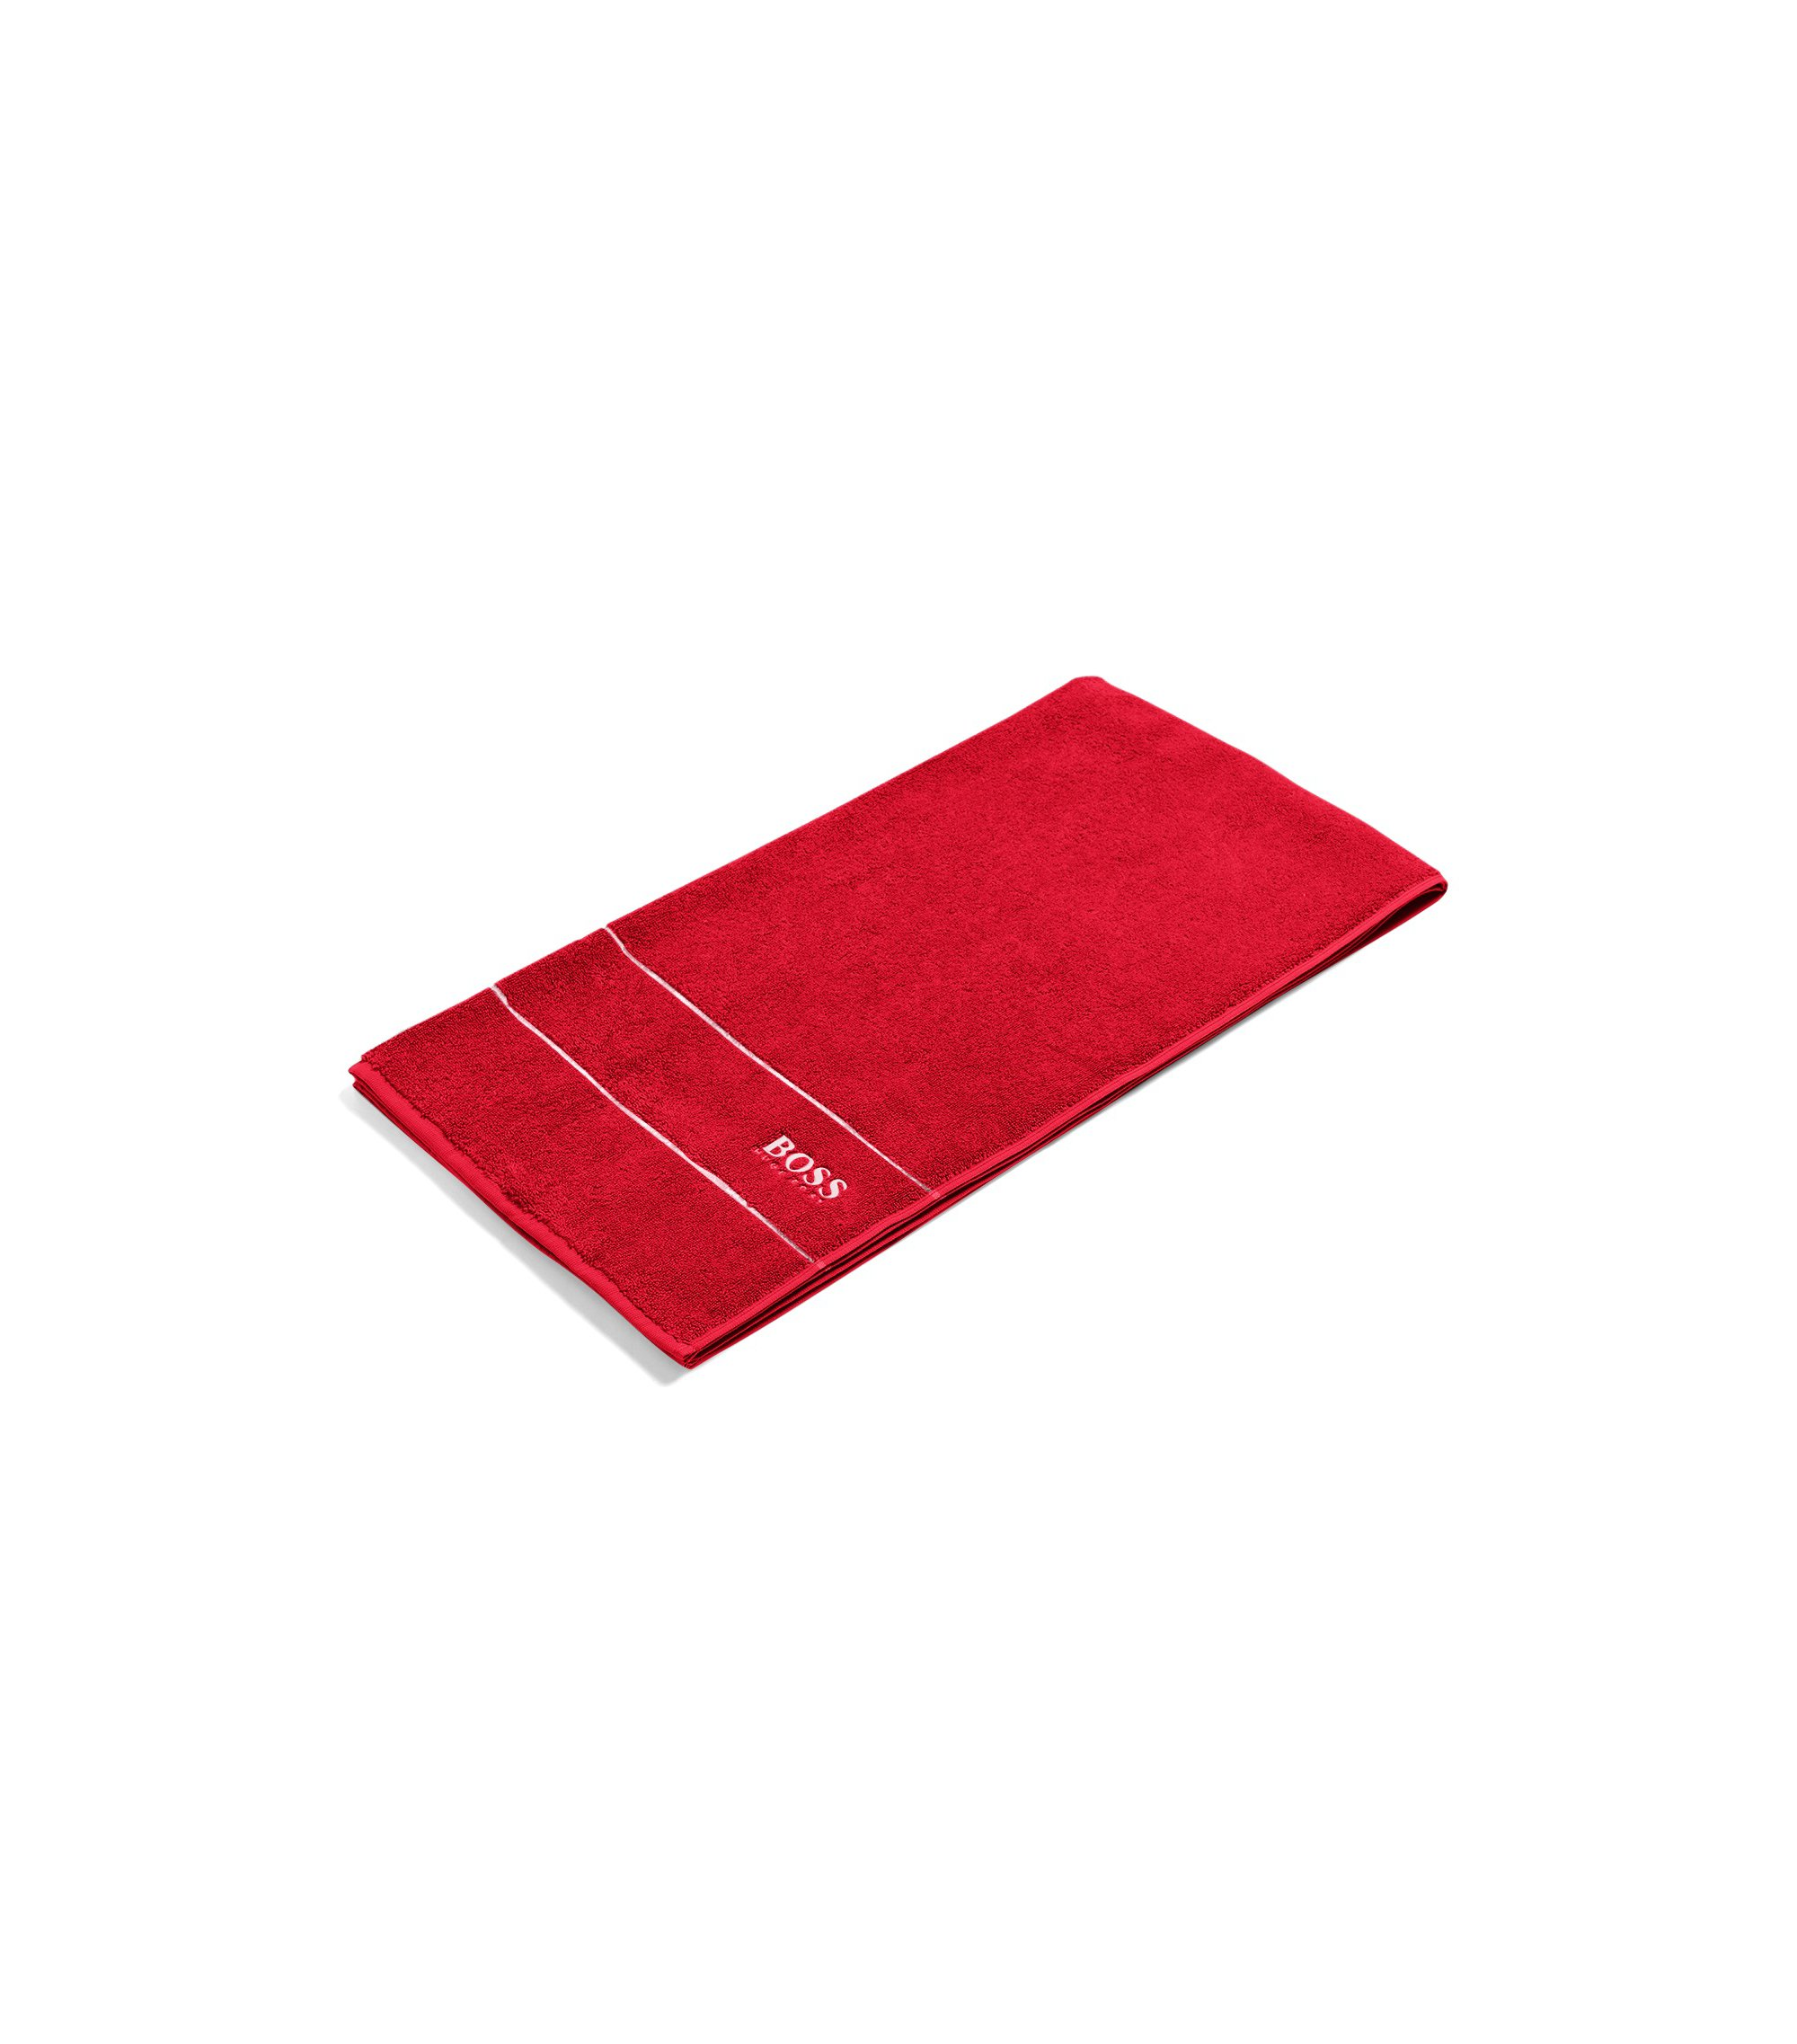 Finest Egyptian cotton bath towel with logo border, Red